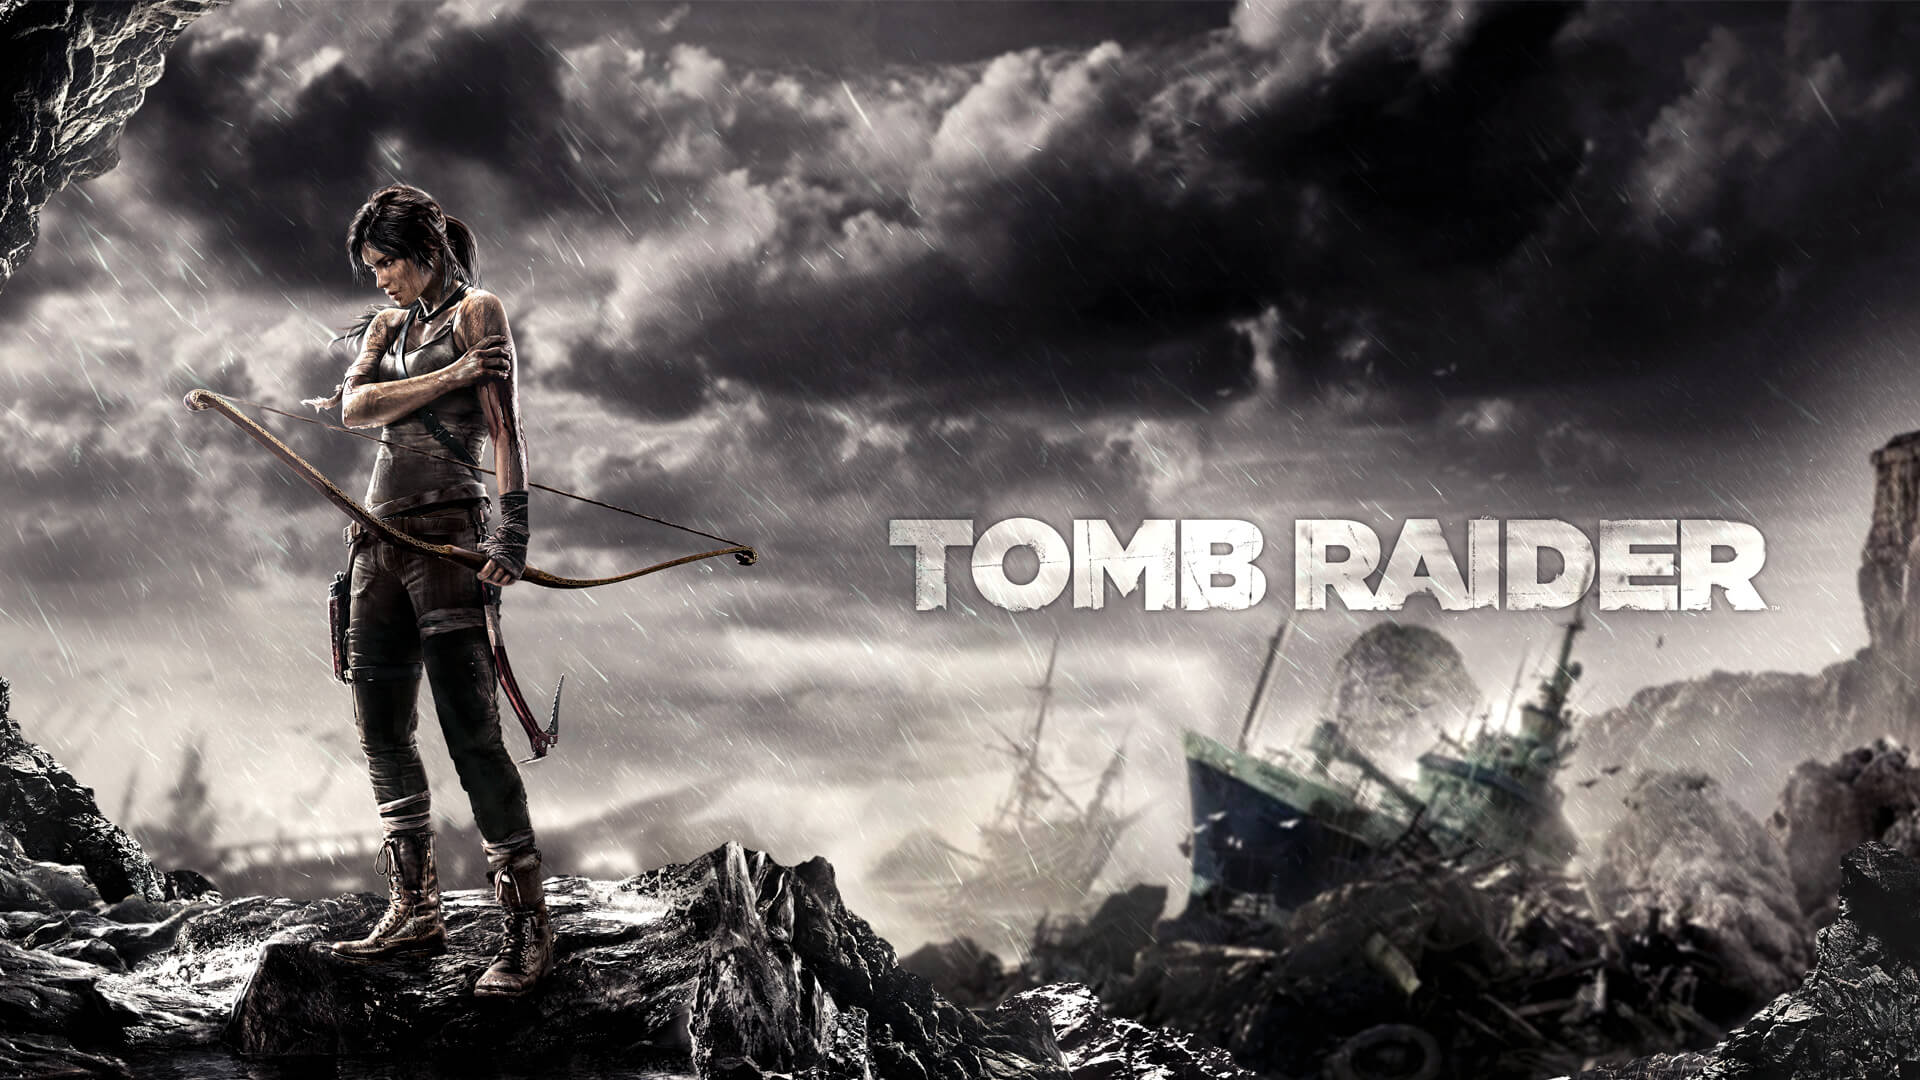 Tomb Raider 2013 Cheats and Trainers - Video Games, Wikis, Cheats